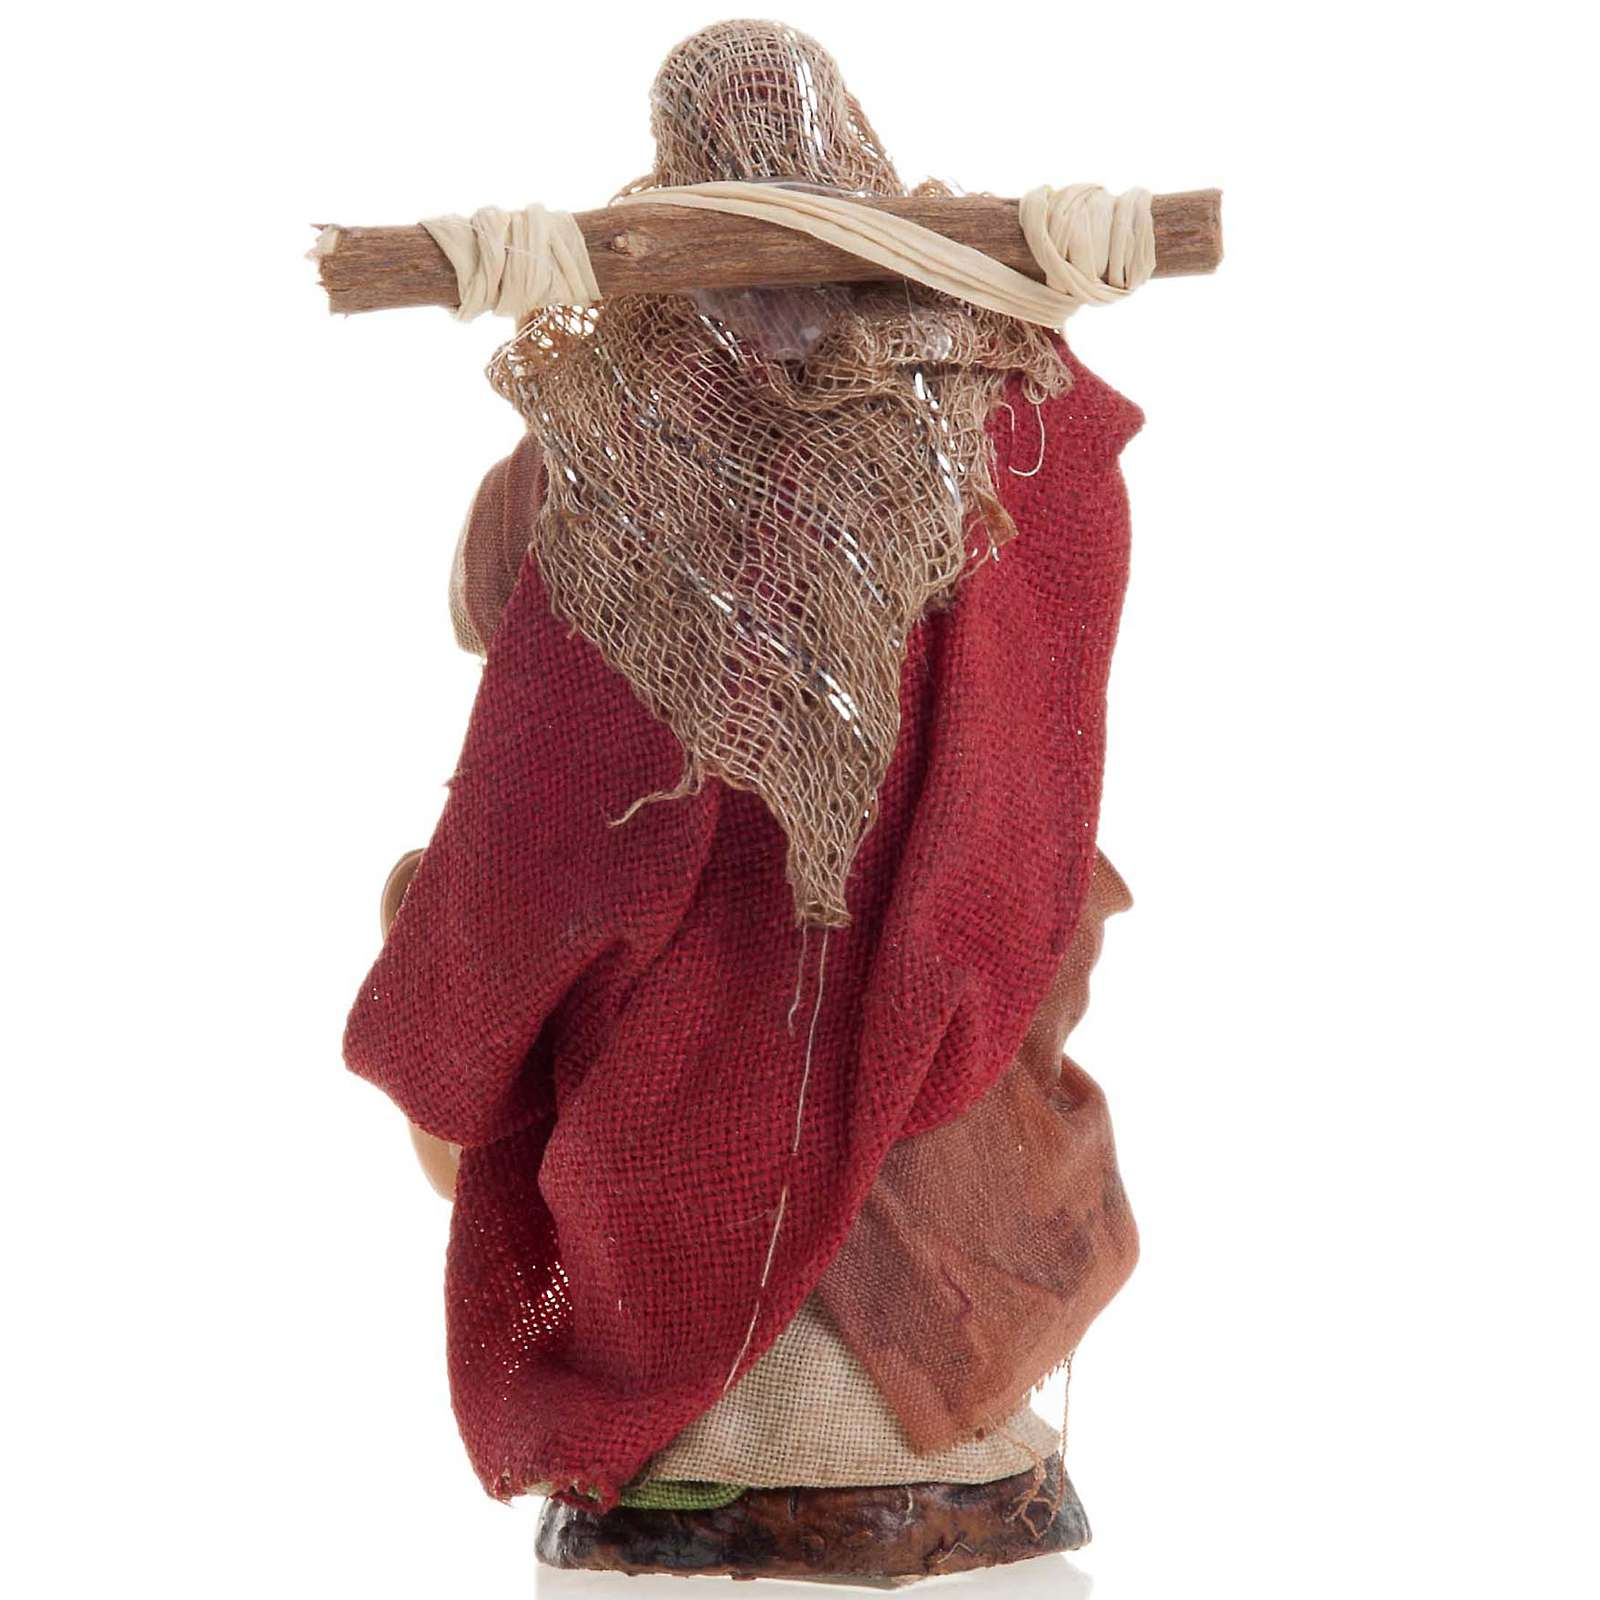 Neapolitan nativity figurine, female water carrier 8cm 4